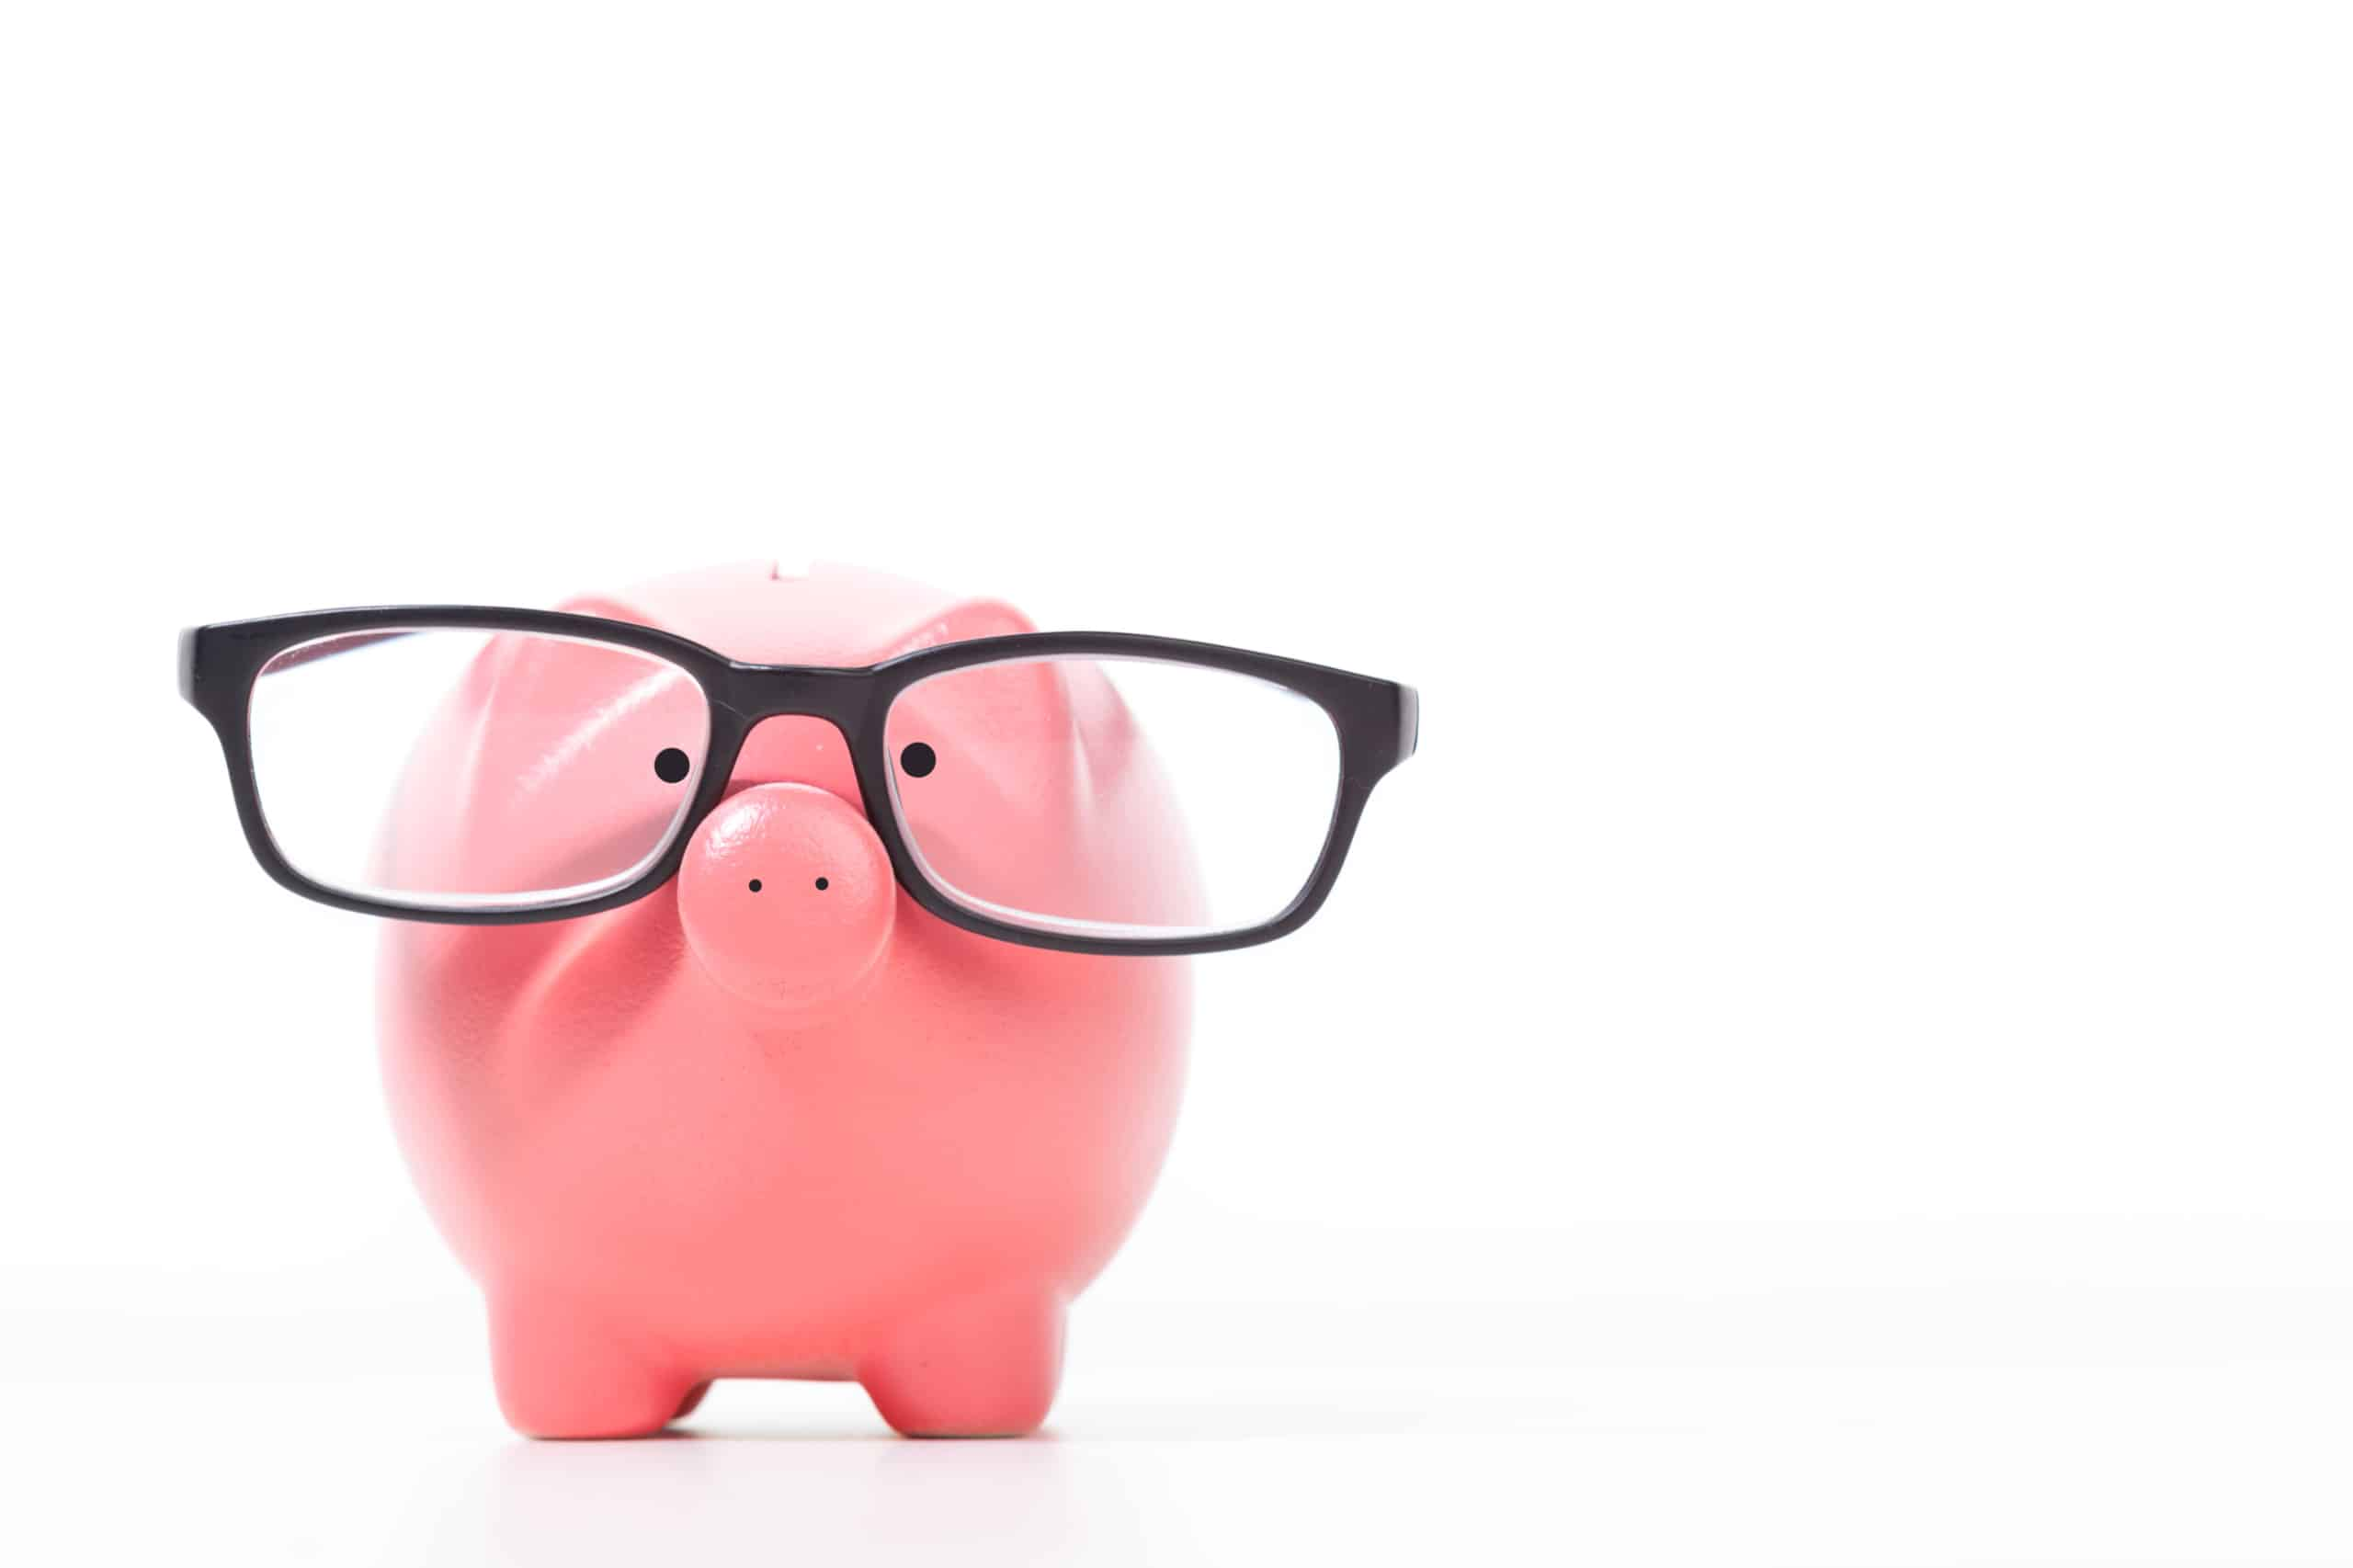 Pink piggy bank with glasses, teach kids about money